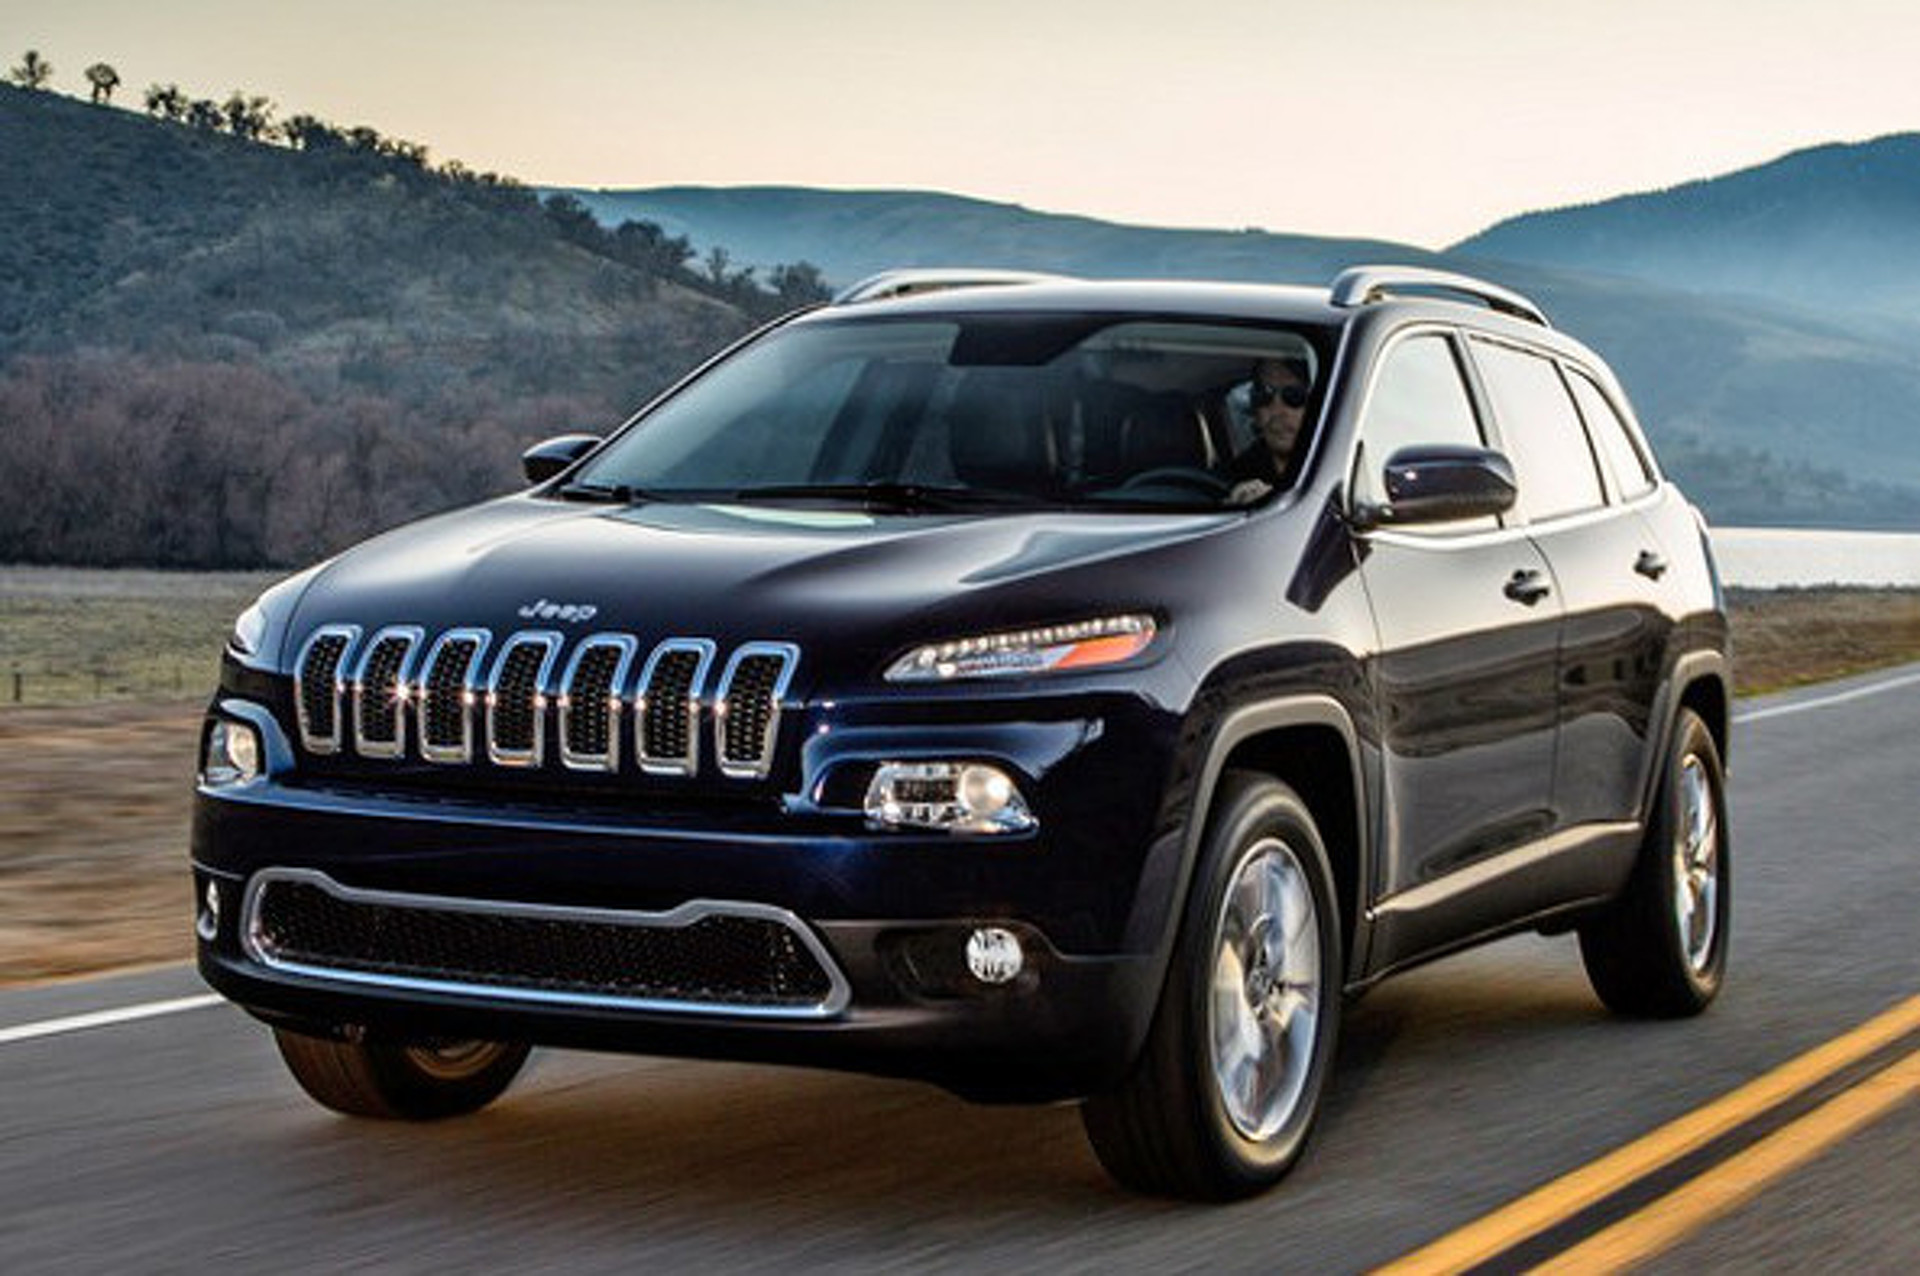 2014 Jeep Cherokee Returns with a Polarizing Face